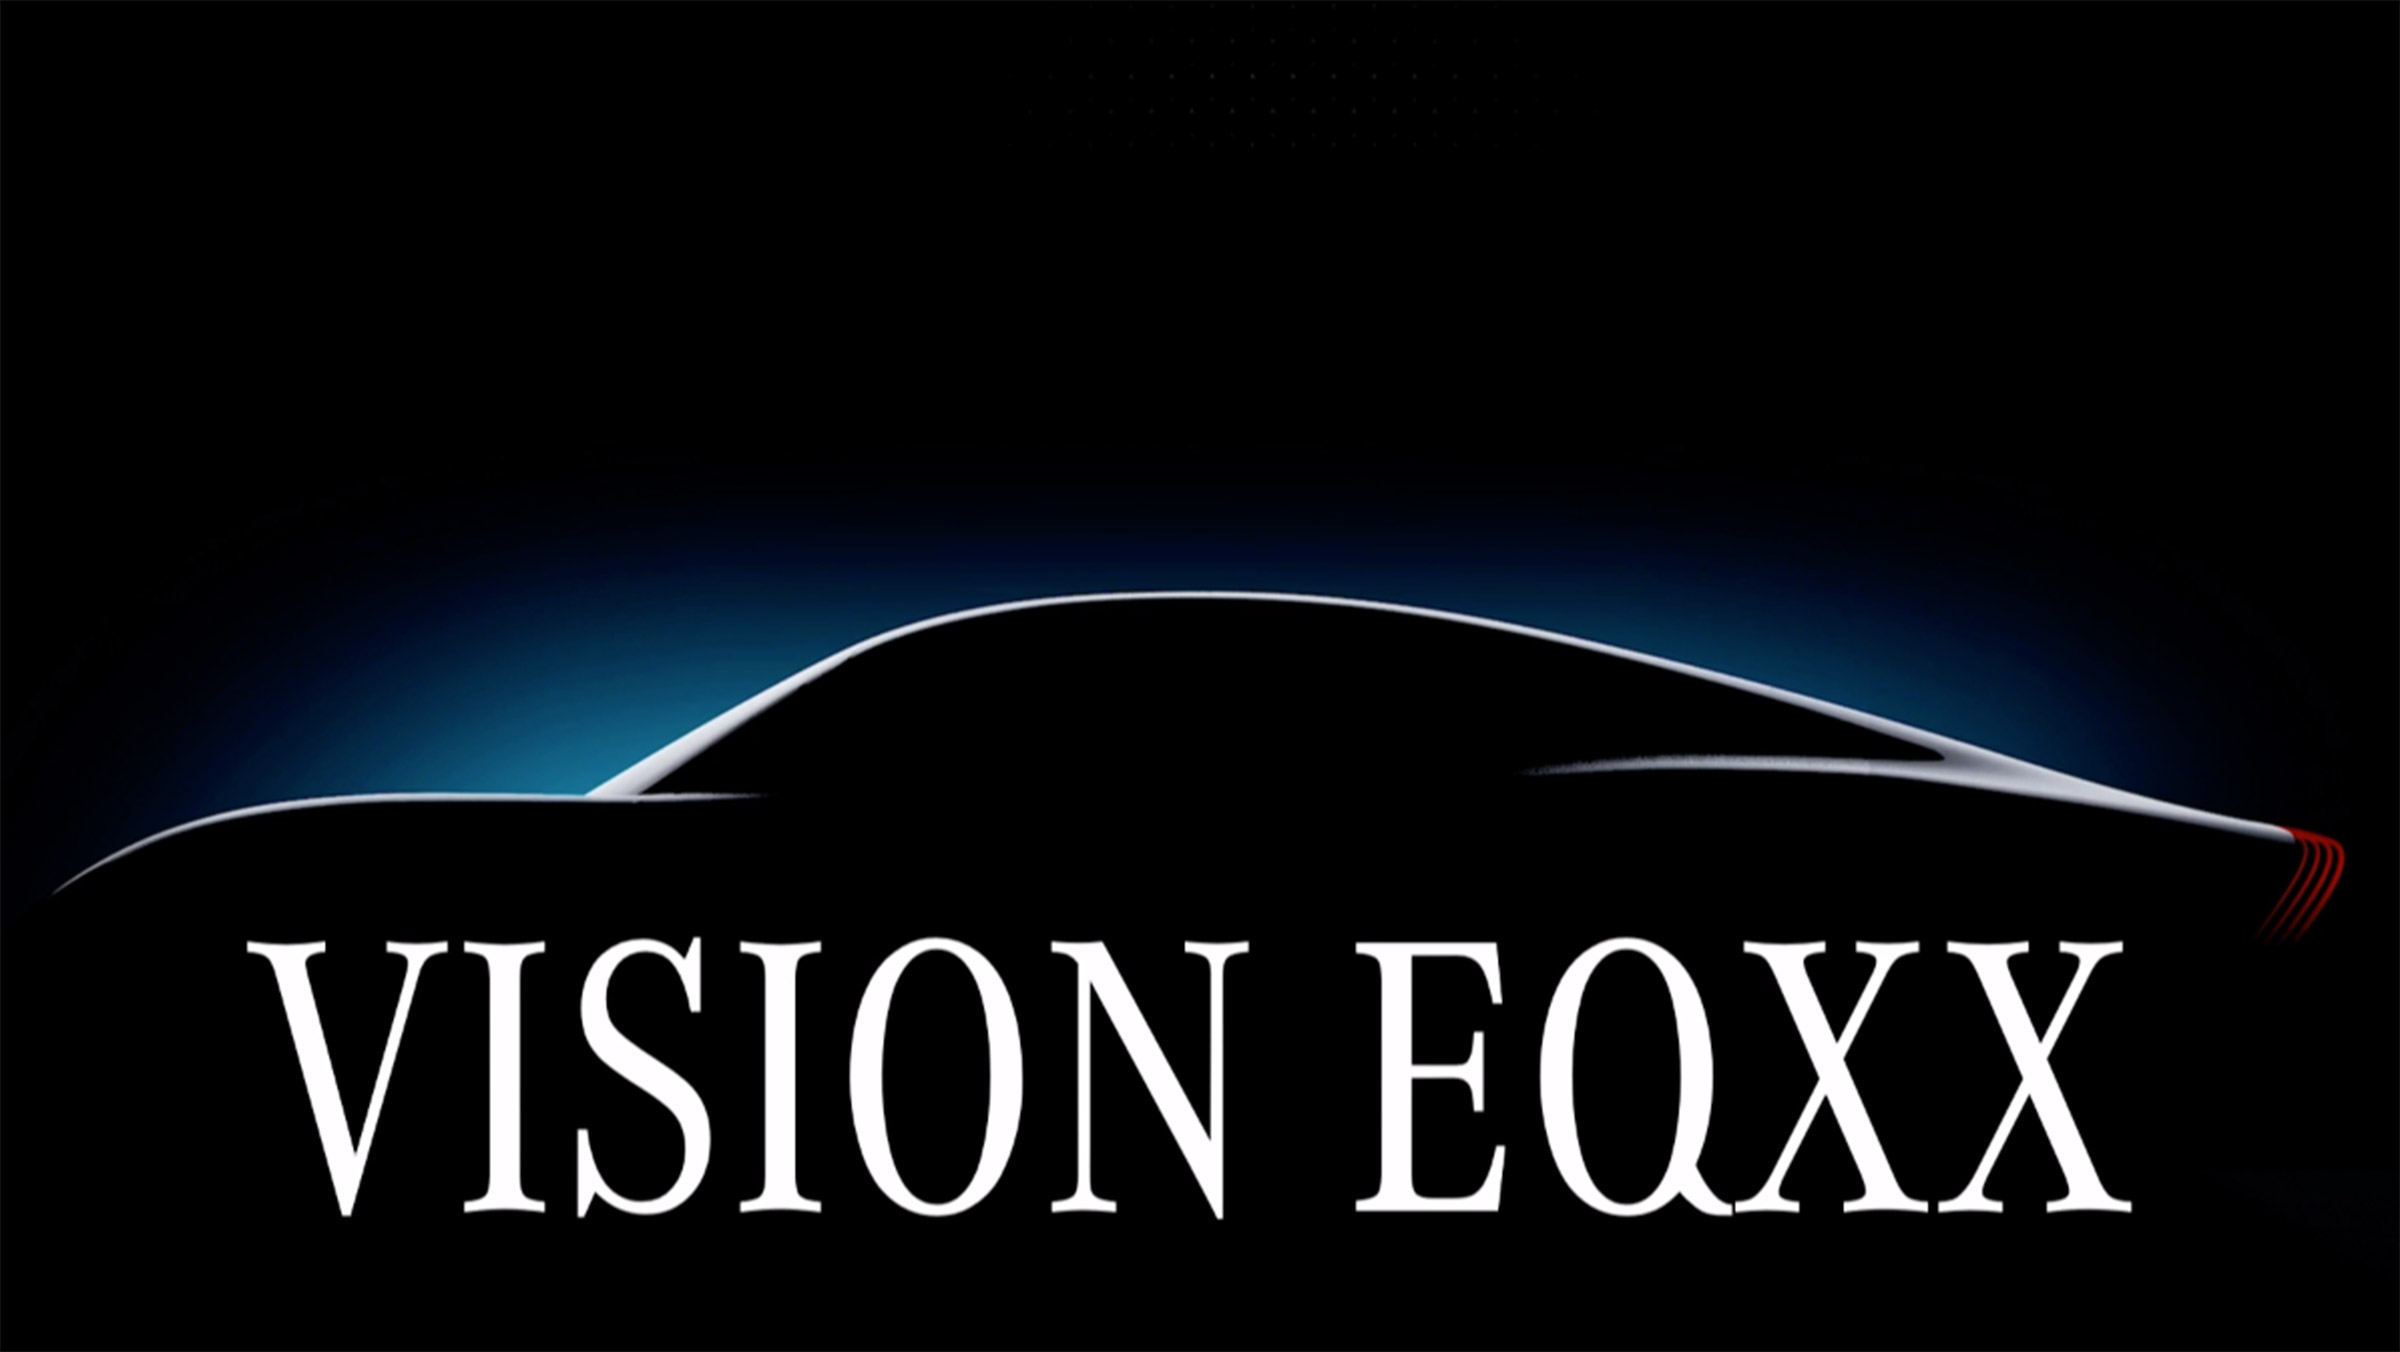 New Mercedes Vision EQXX prototype electric car teased with 750-mile range